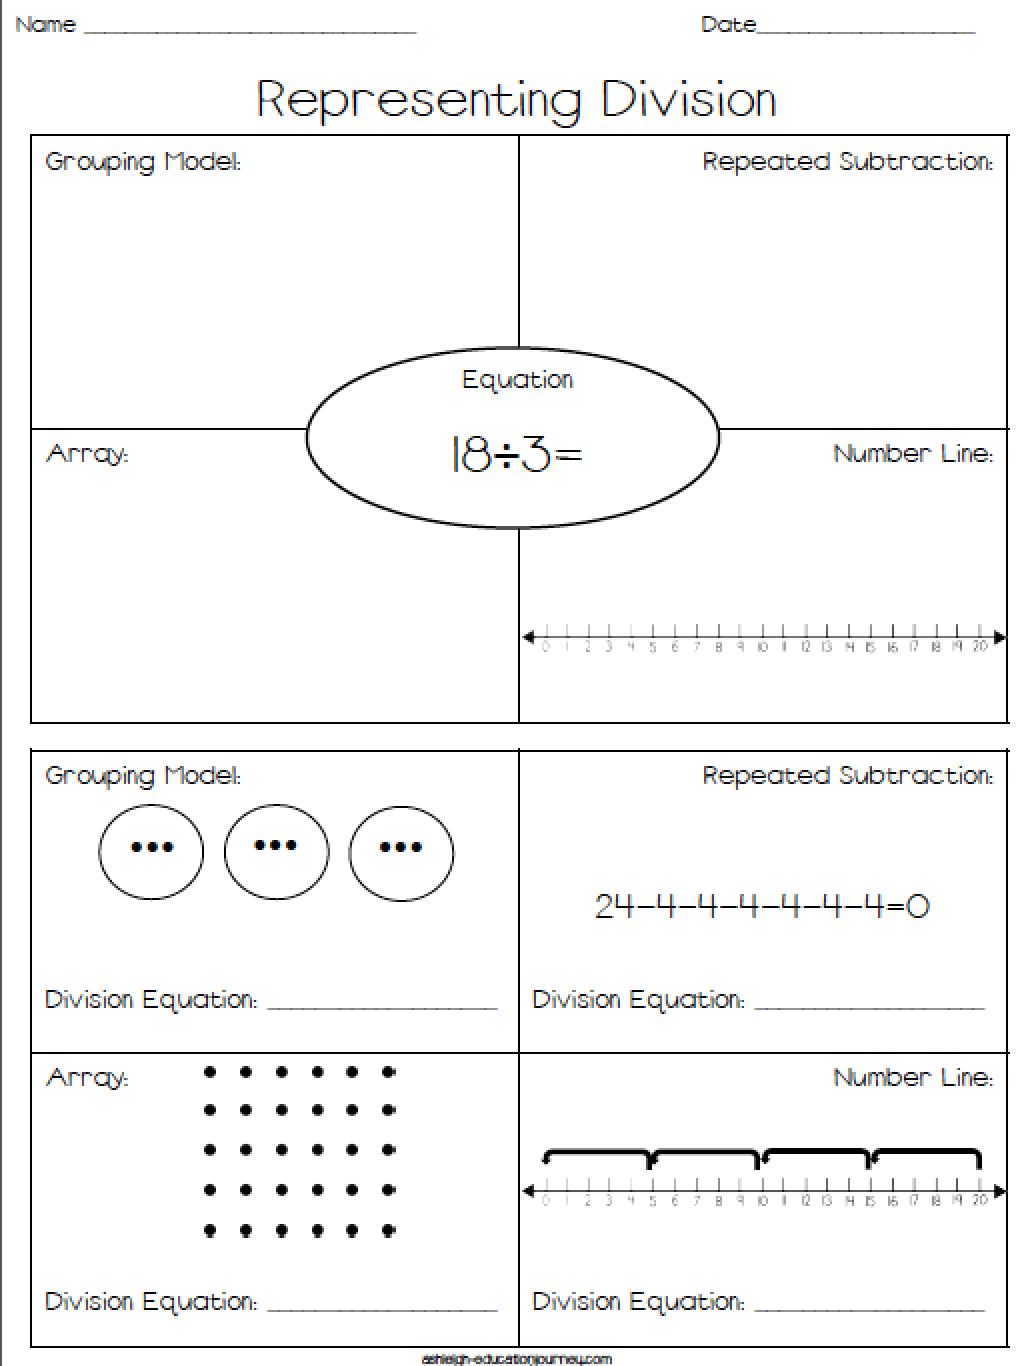 Representing Division Free Worksheet Where Students Represent Division Using Repeated